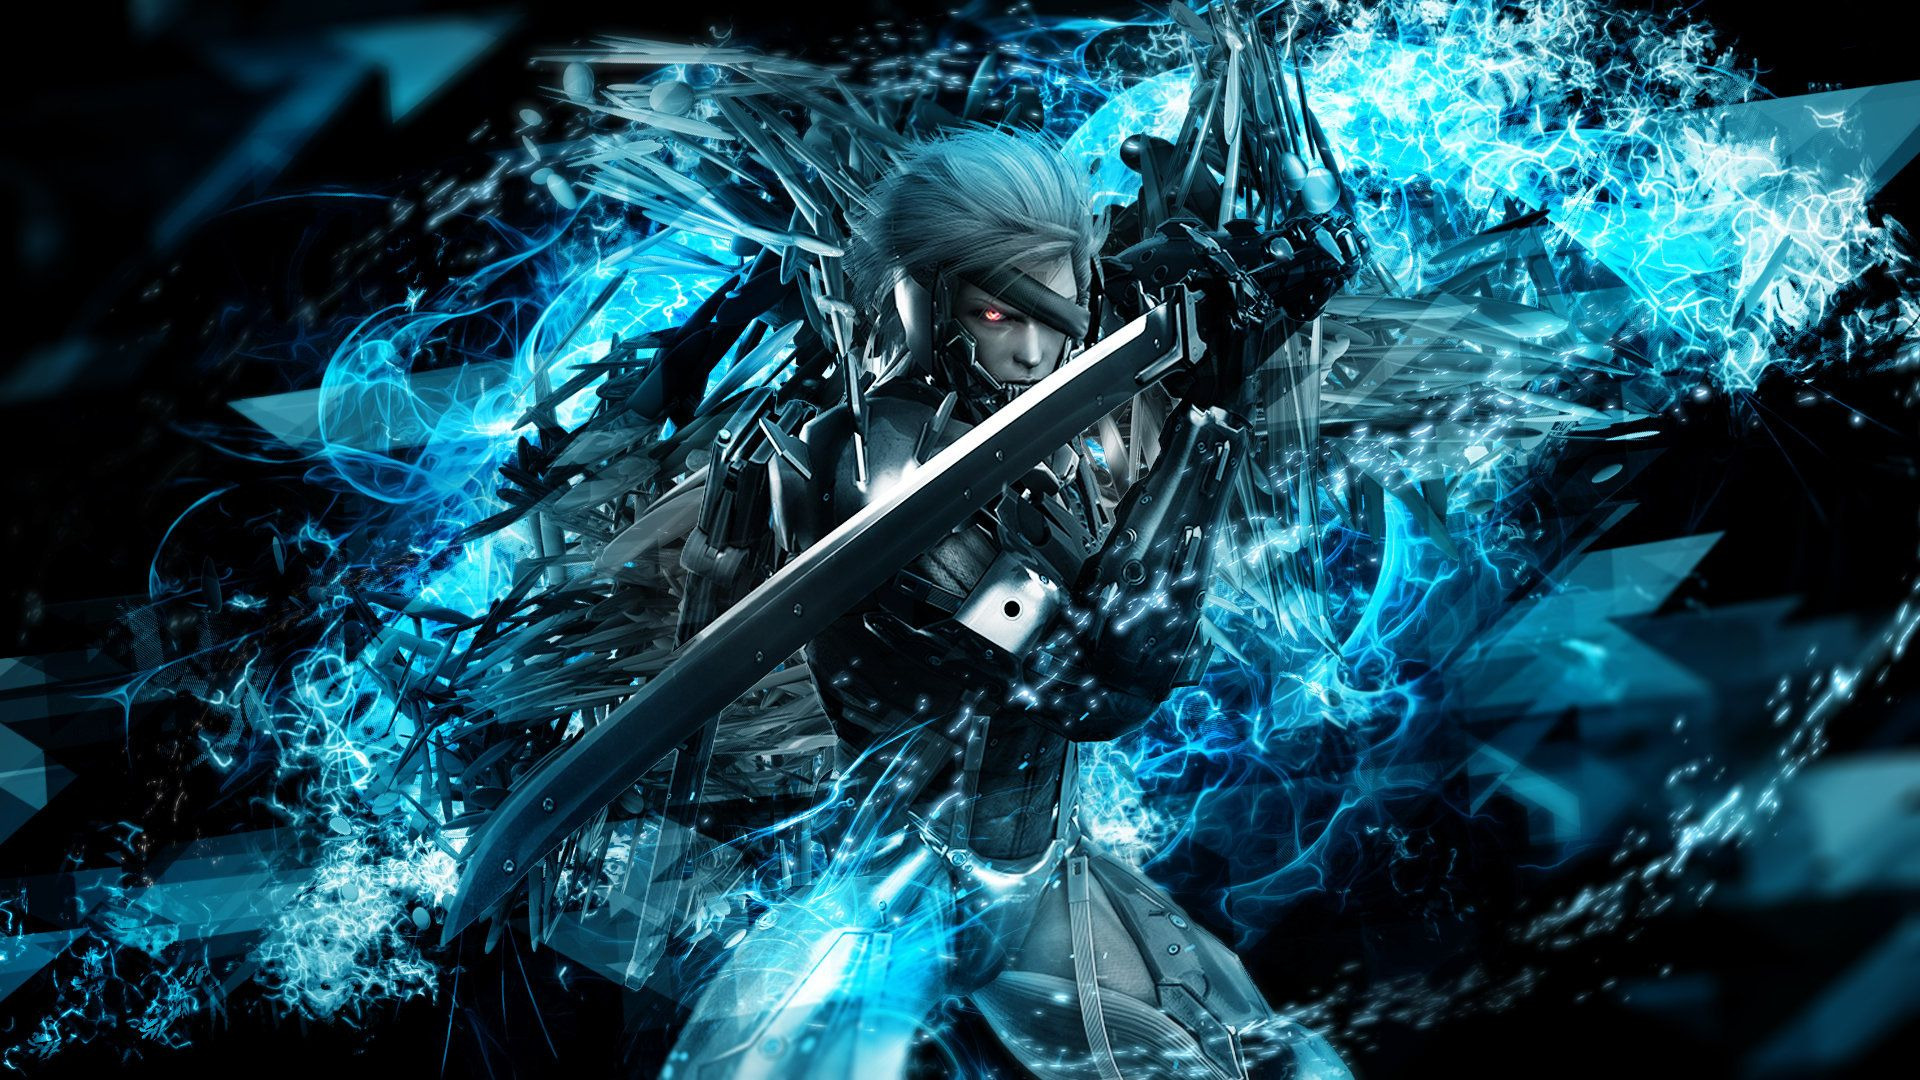 metal gear rising revengeance hd wallpaper - http://69hdwallpapers